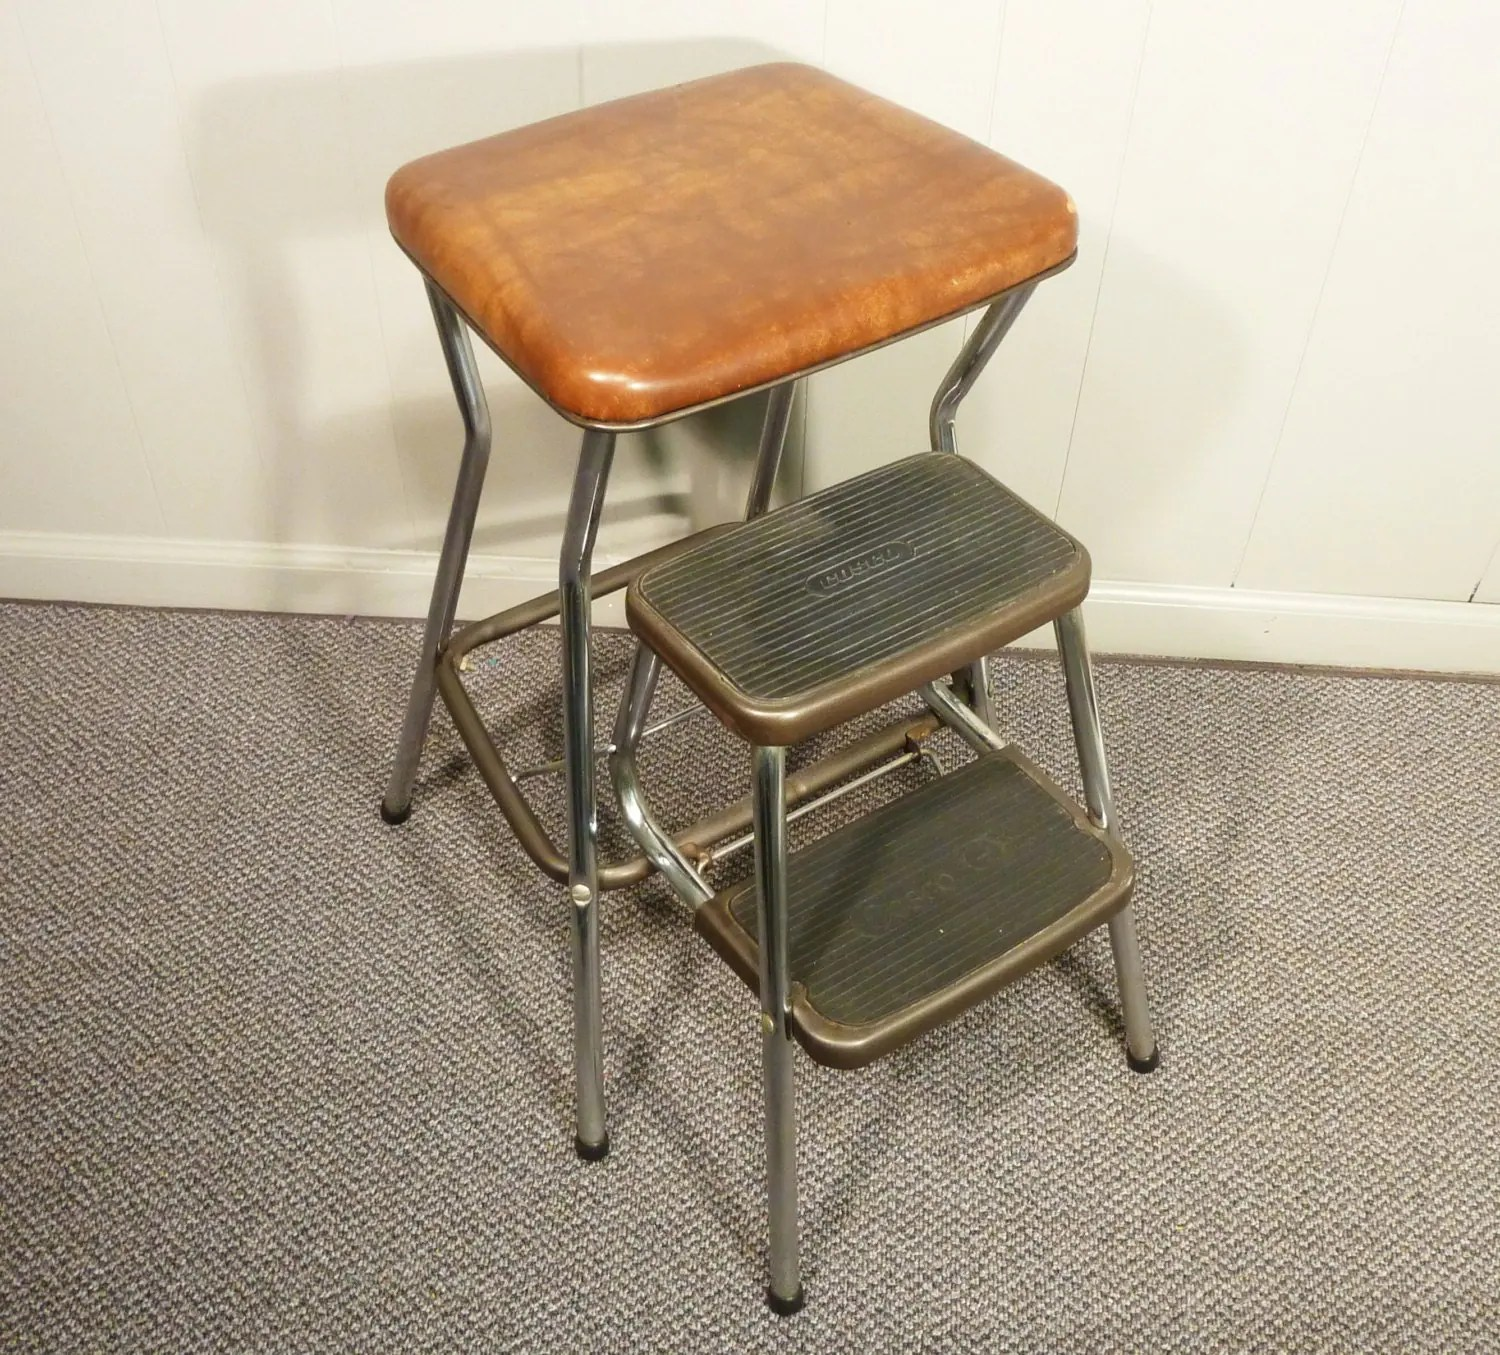 Stool Chair Retro 50s Vintage Step Stool Kitchen Chair Cosco